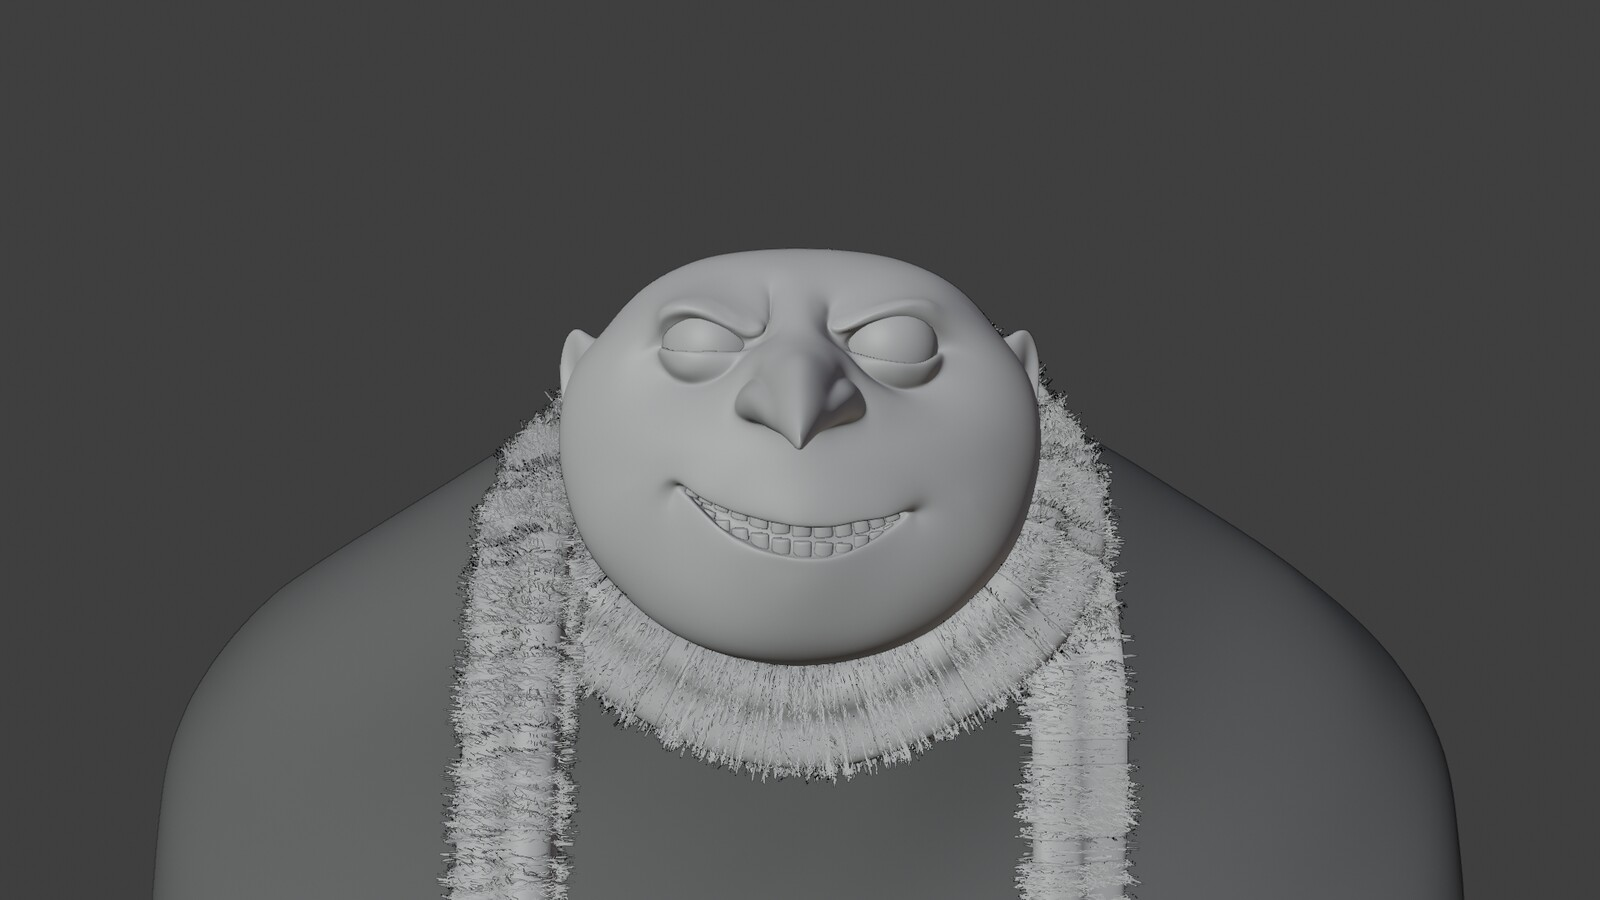 Clay render, front view